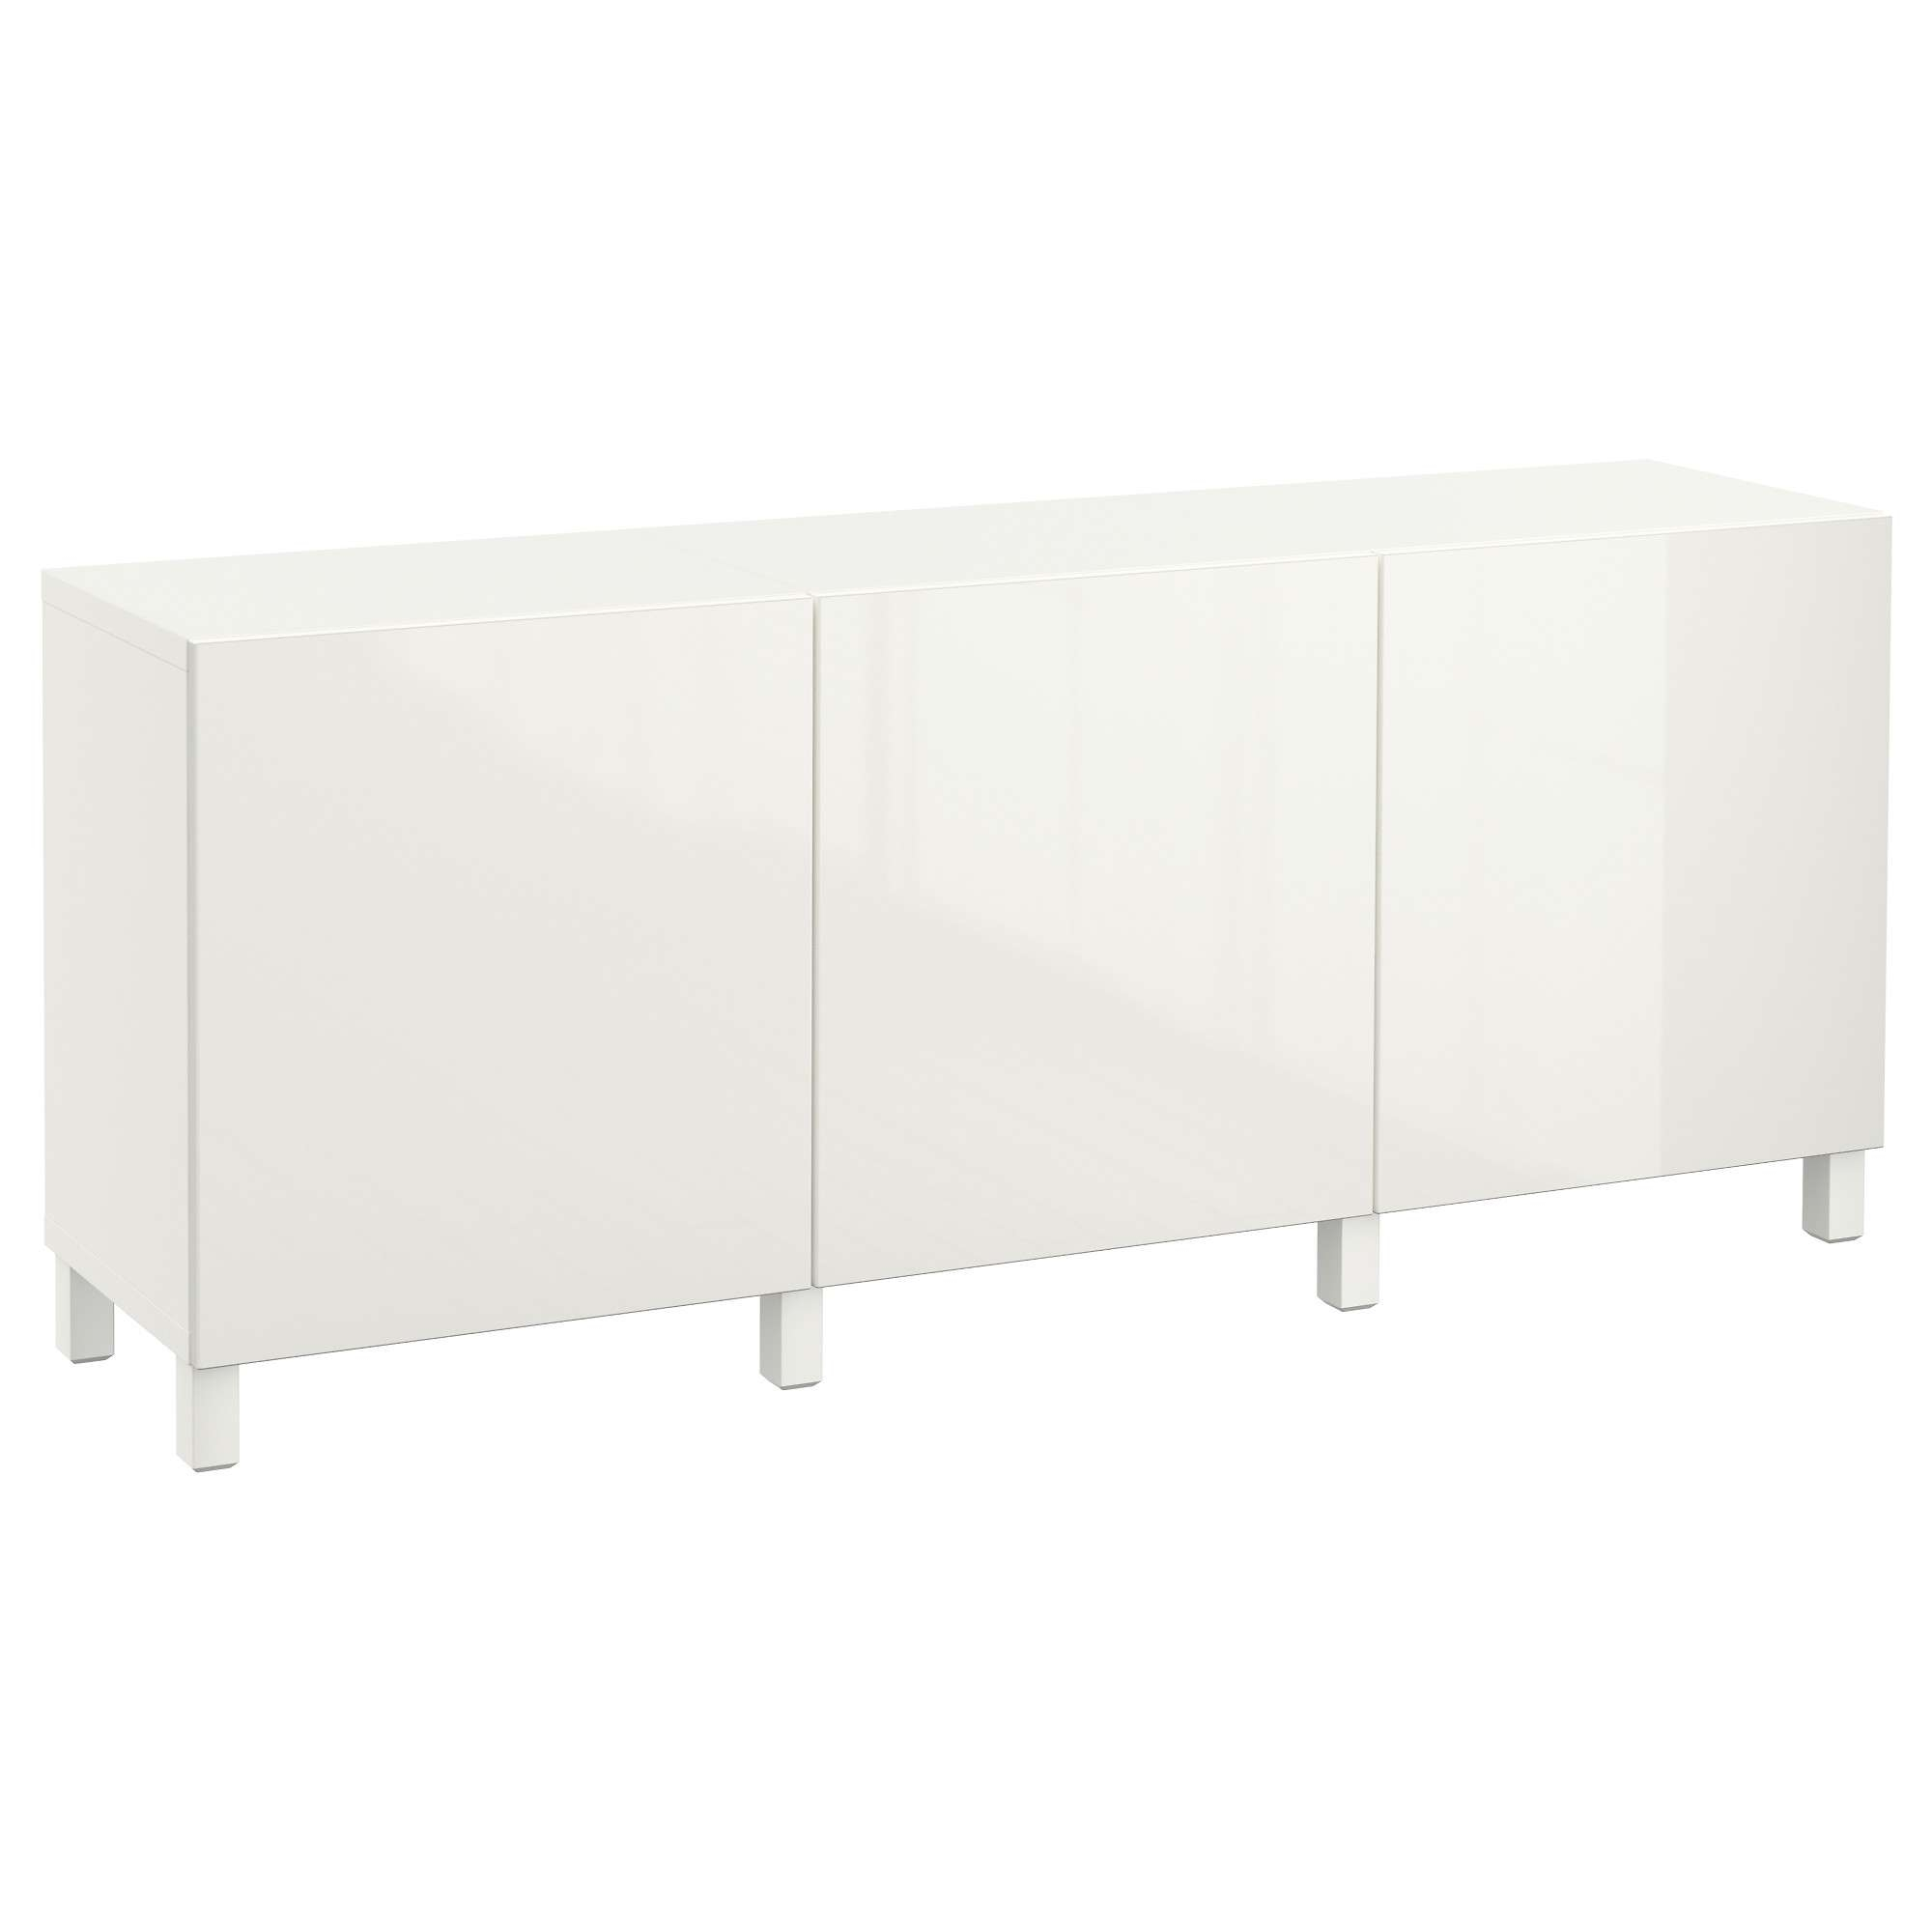 Bestå Storage Combination With Doors – White/selsviken High Gloss For Ikea Besta Sideboards (View 4 of 20)